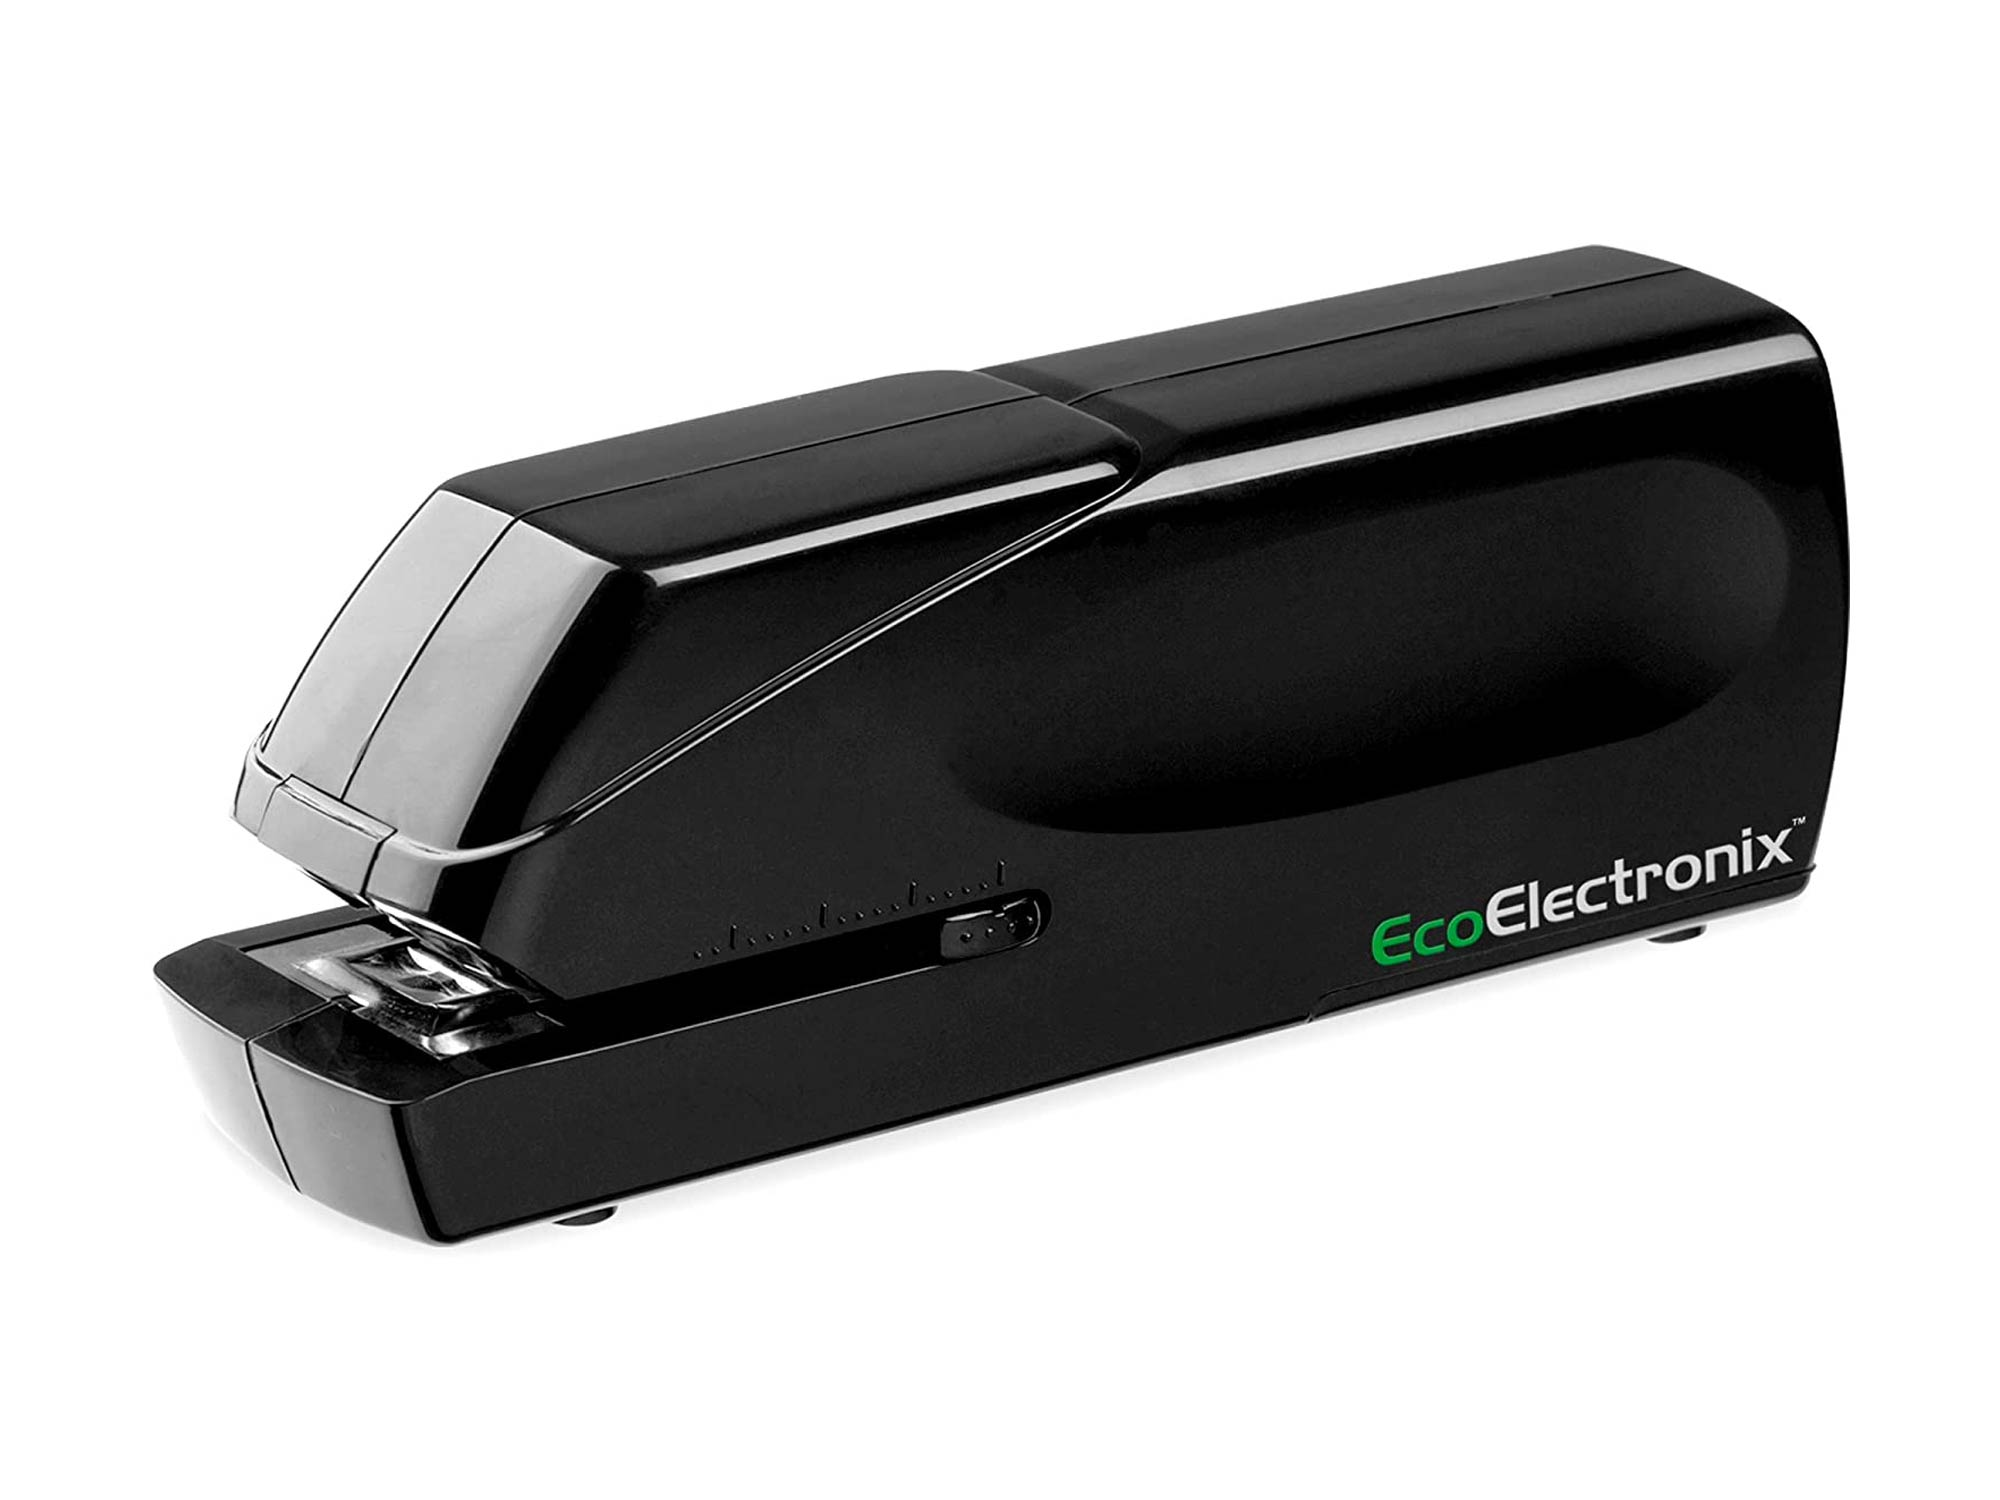 EX-25 Automatic Heavy Duty Electric Stapler - Includes Staples Power Cable & Lifetime Coverage by EcoElectronix - Jam-Free 25 Sheet Full Strip Staple Capacity for Professional and Home Office Use